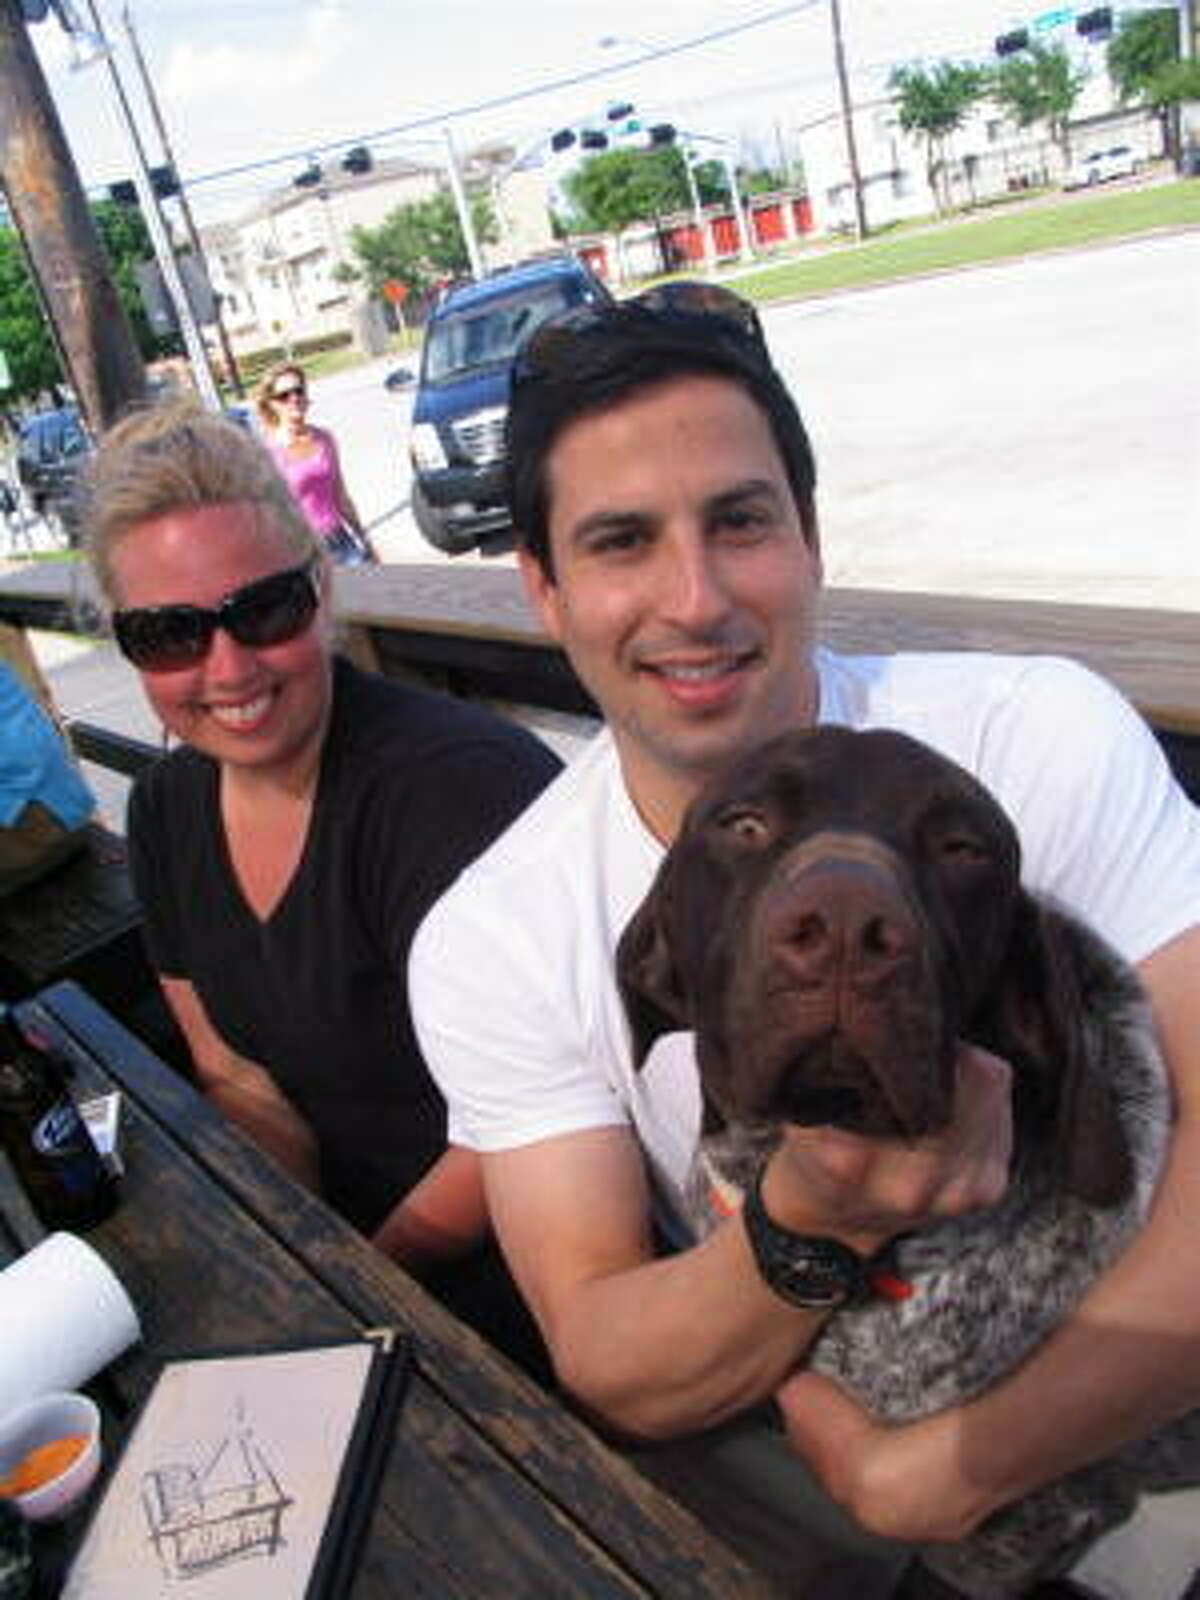 Michele Meeche with James Hernandez and Dutch.